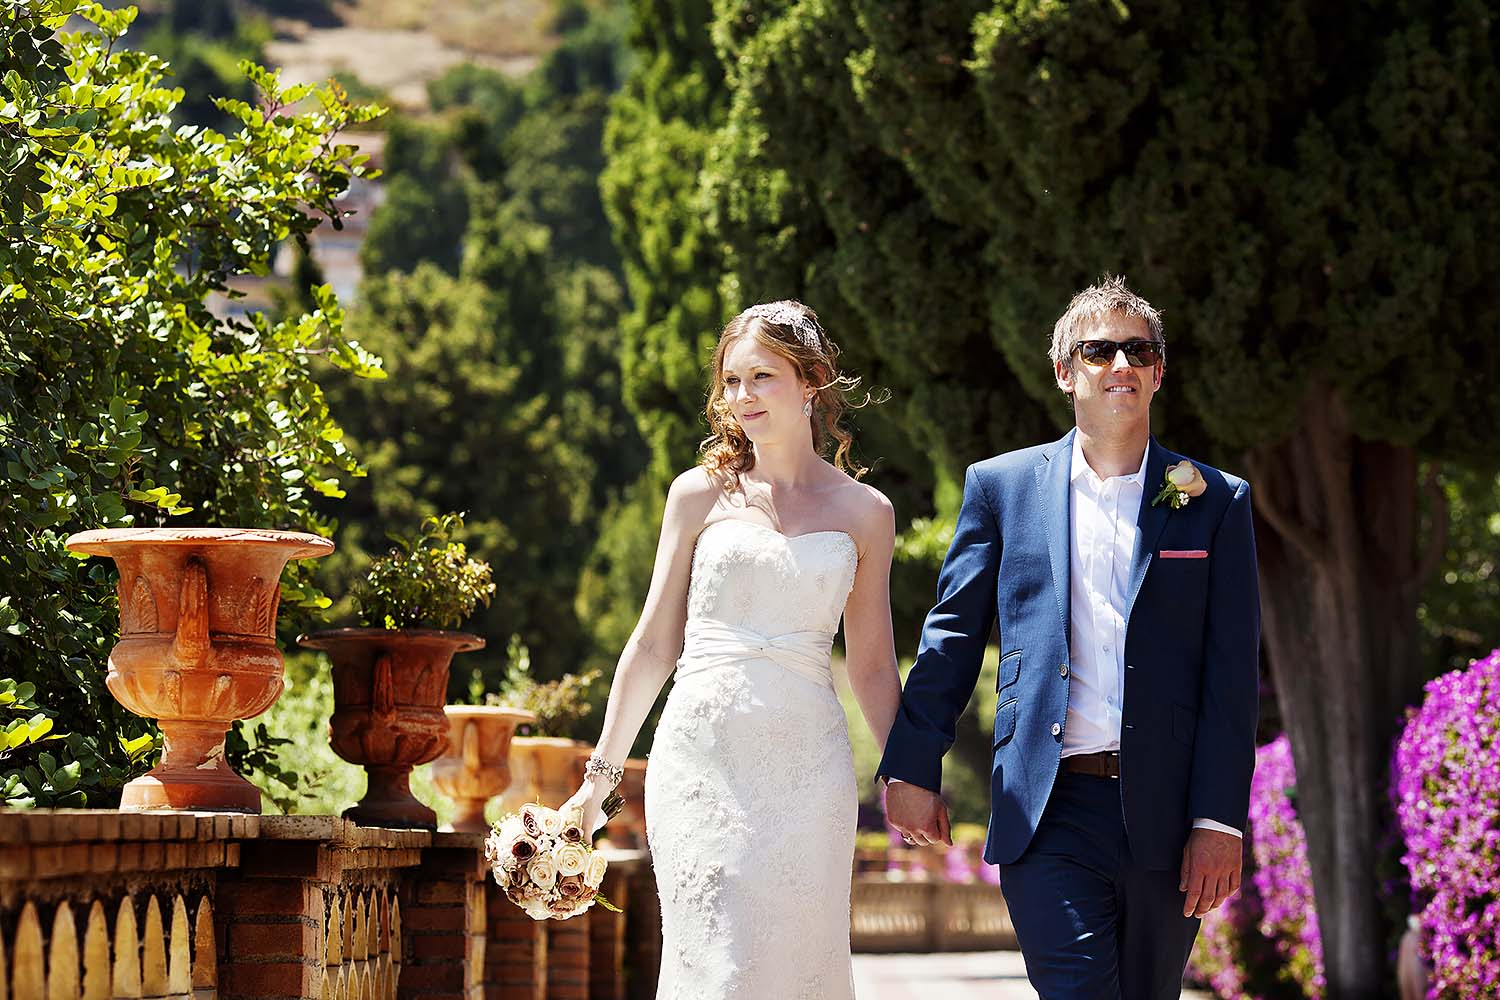 Taormina Best Wedding Venue in Sicily photoshoot by top Photographer to reportage marriage in Italy